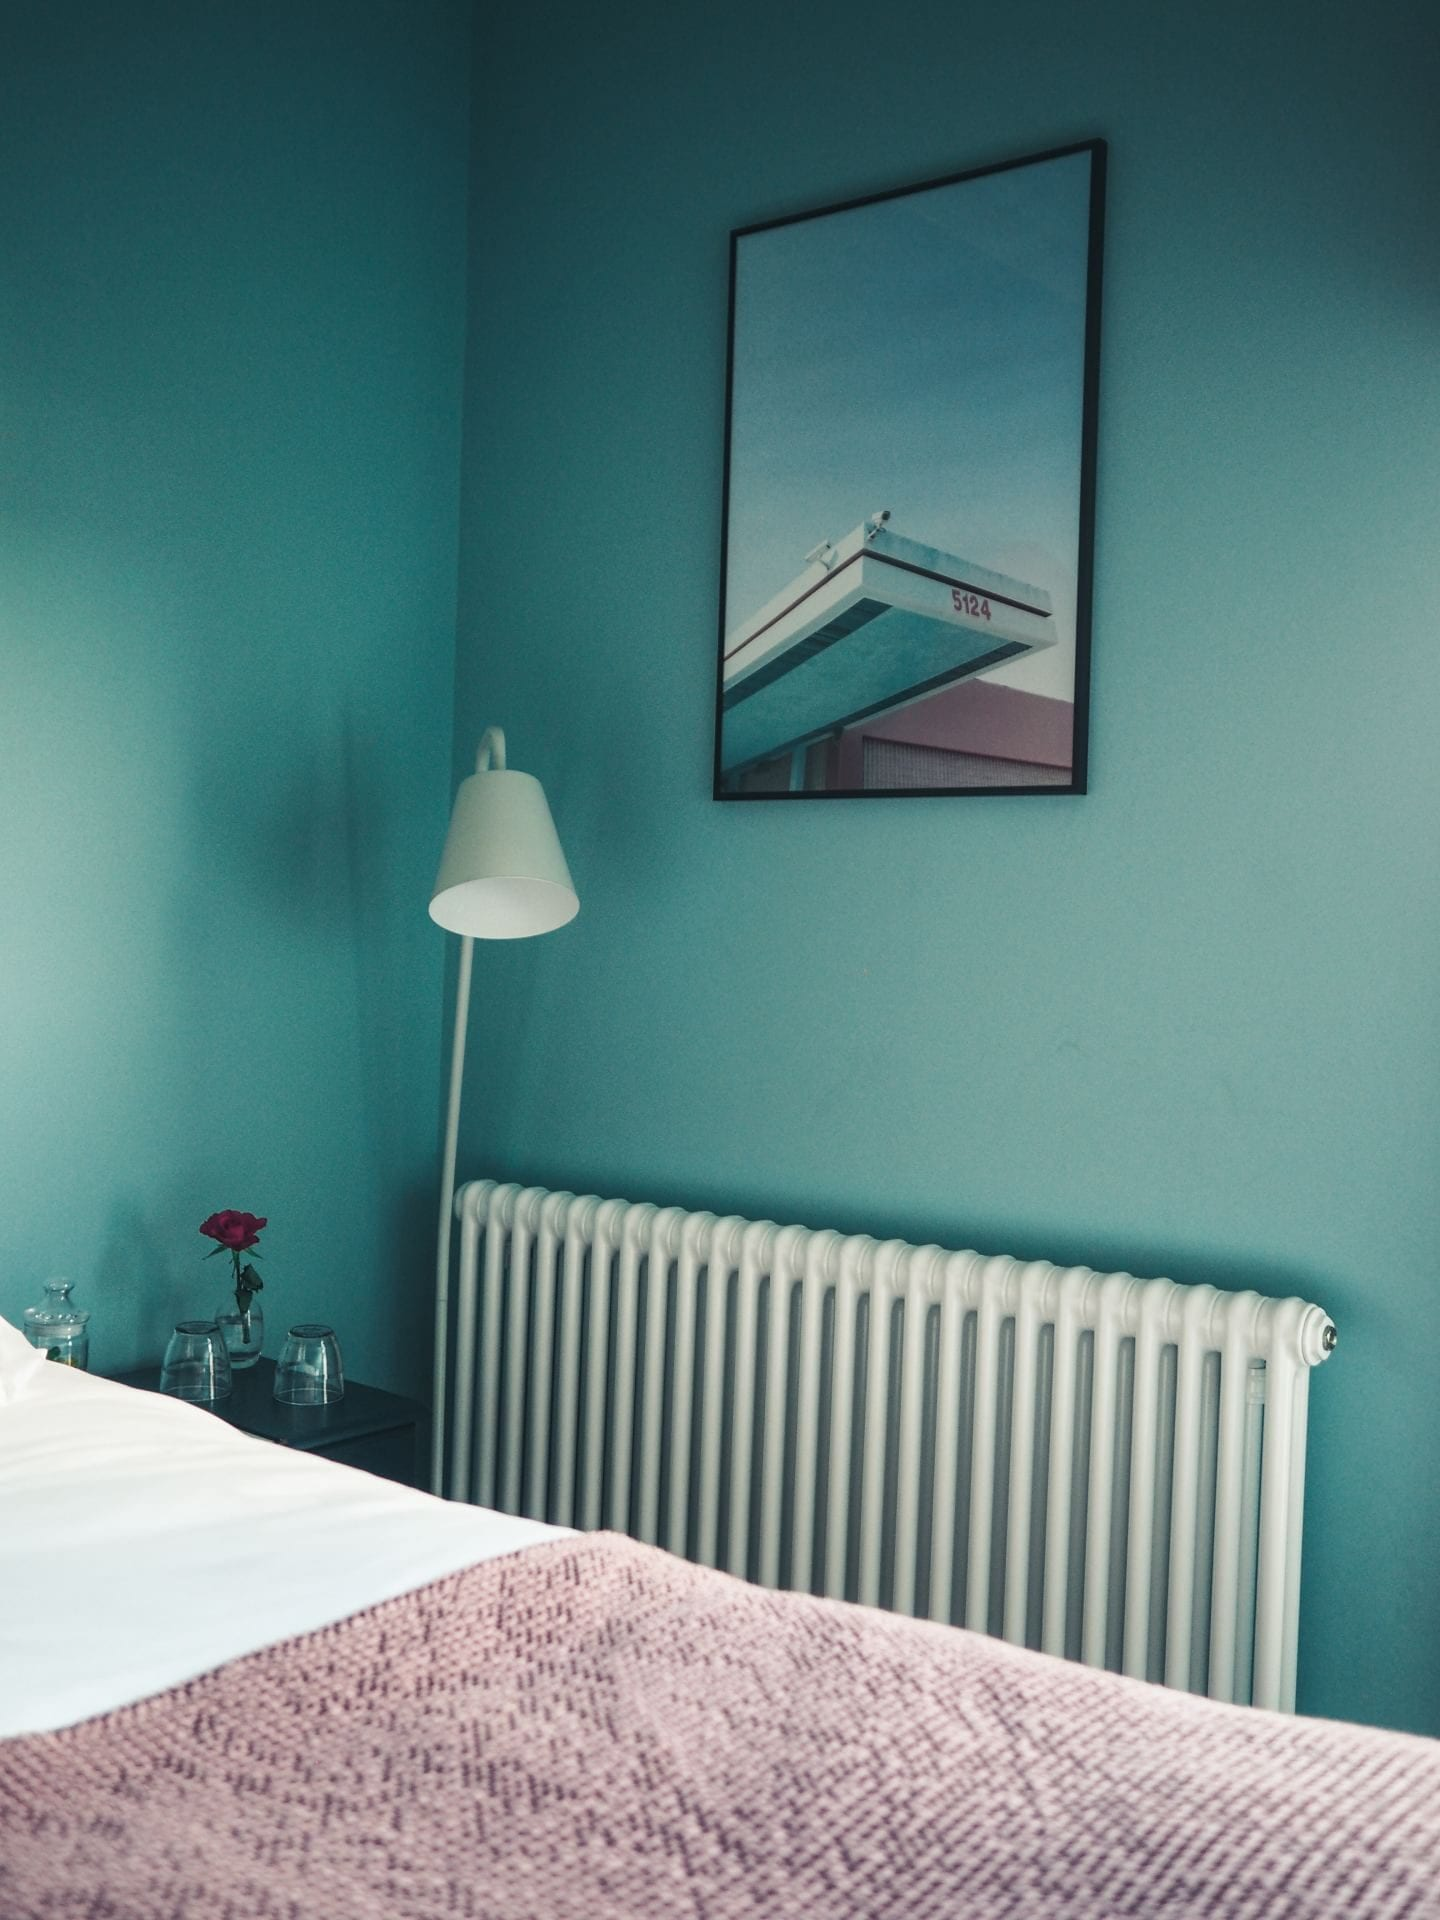 the rose deal kent decor interior design wes anderson